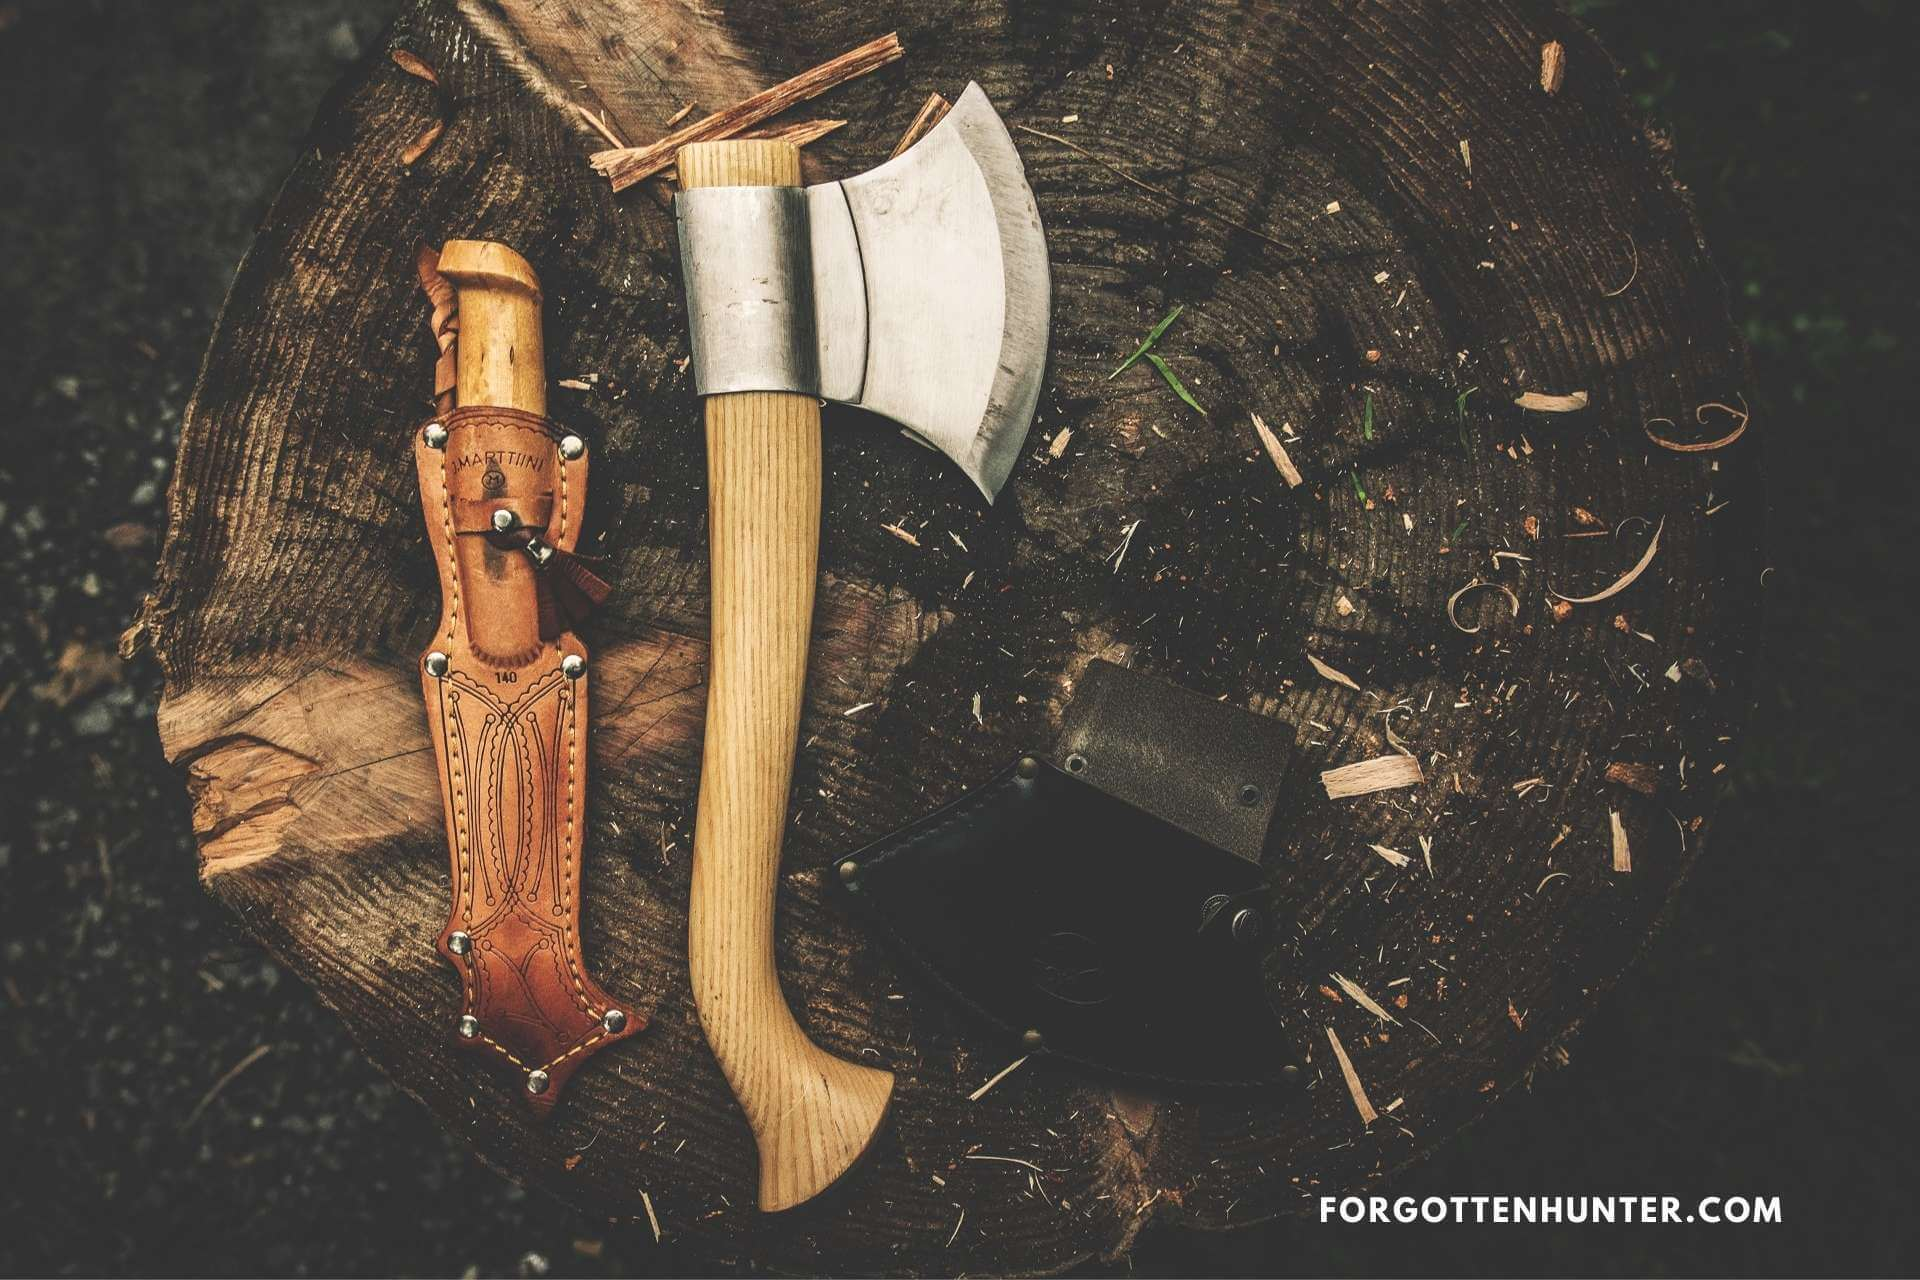 Free Neck Knife Review - Knife for Hunting, Survival, Self-Defense and Outdoors